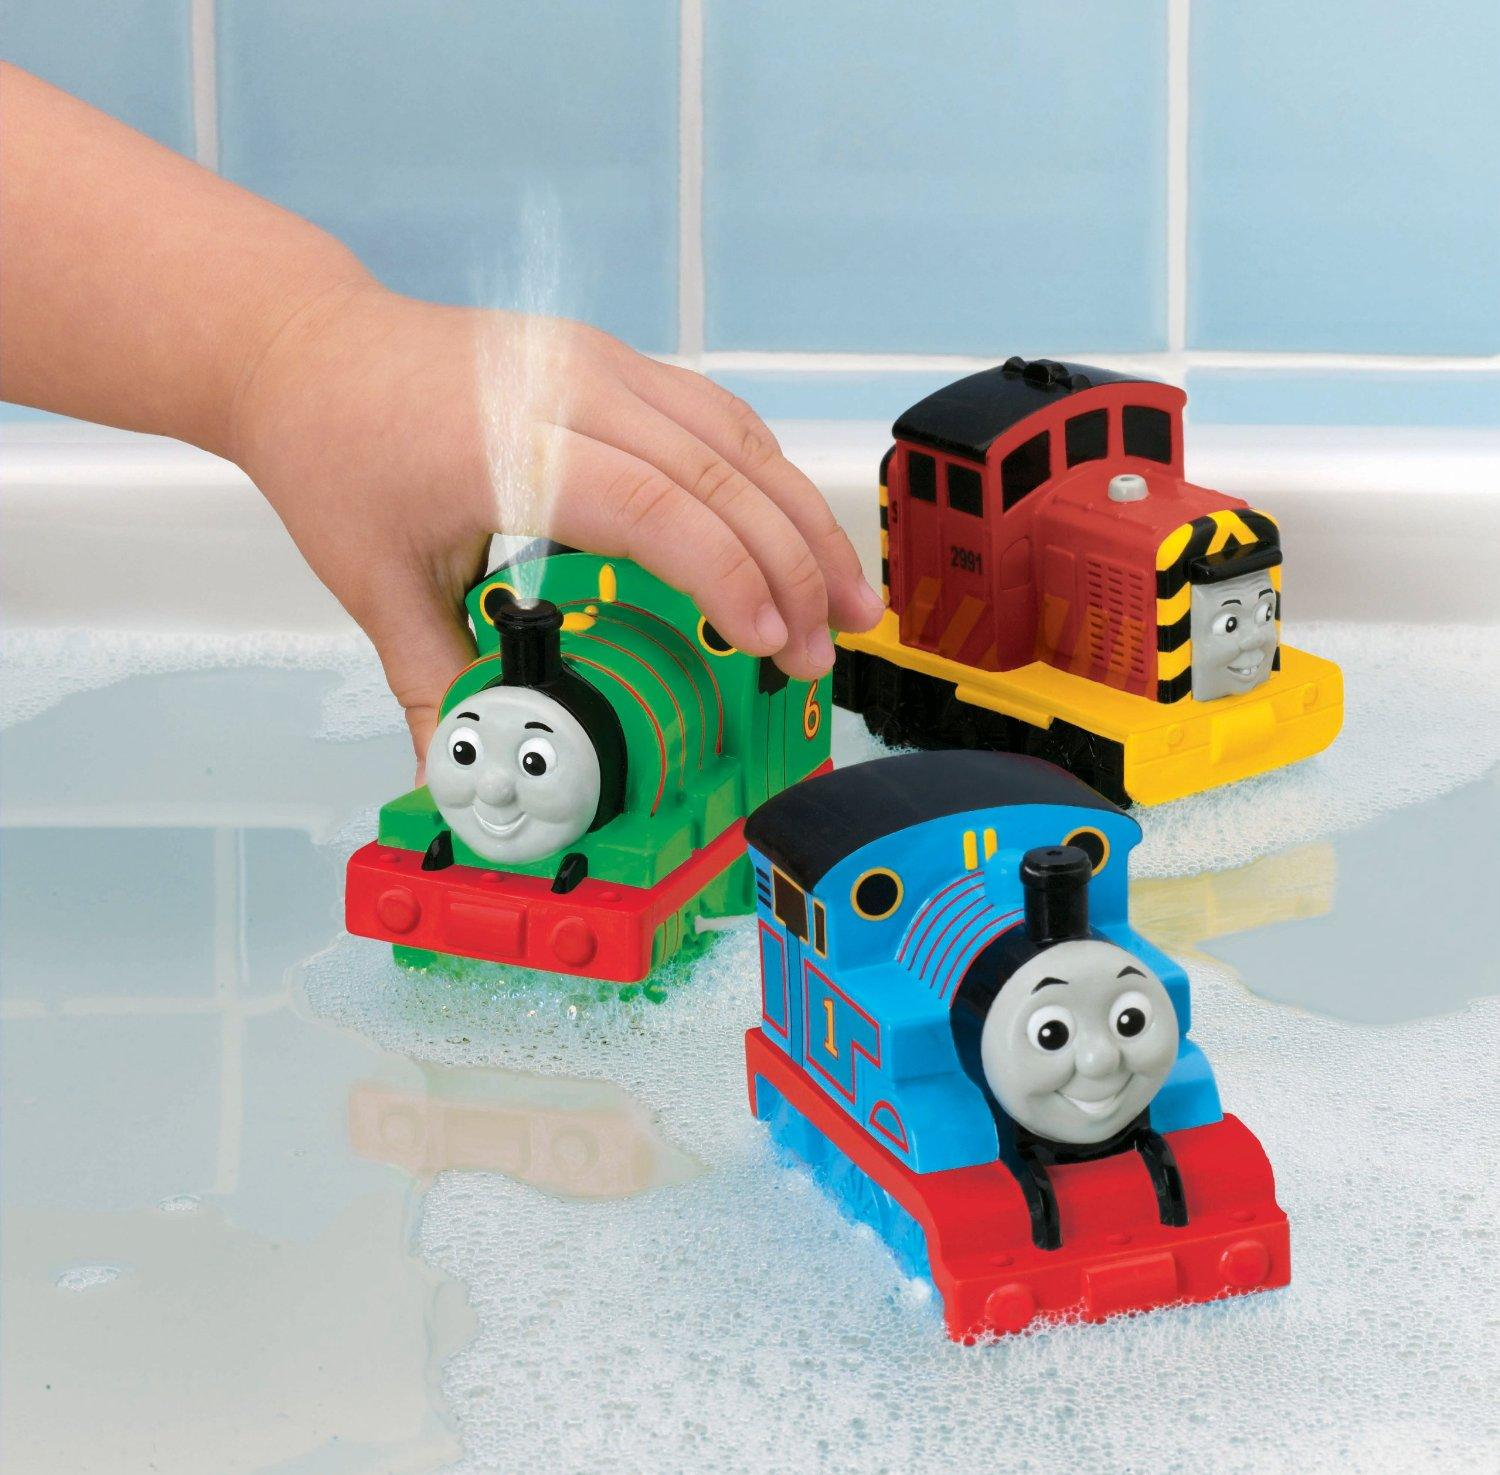 Amazon.com: Fisher Price Thomas And Friends Bath Squirters (3 Pack ...